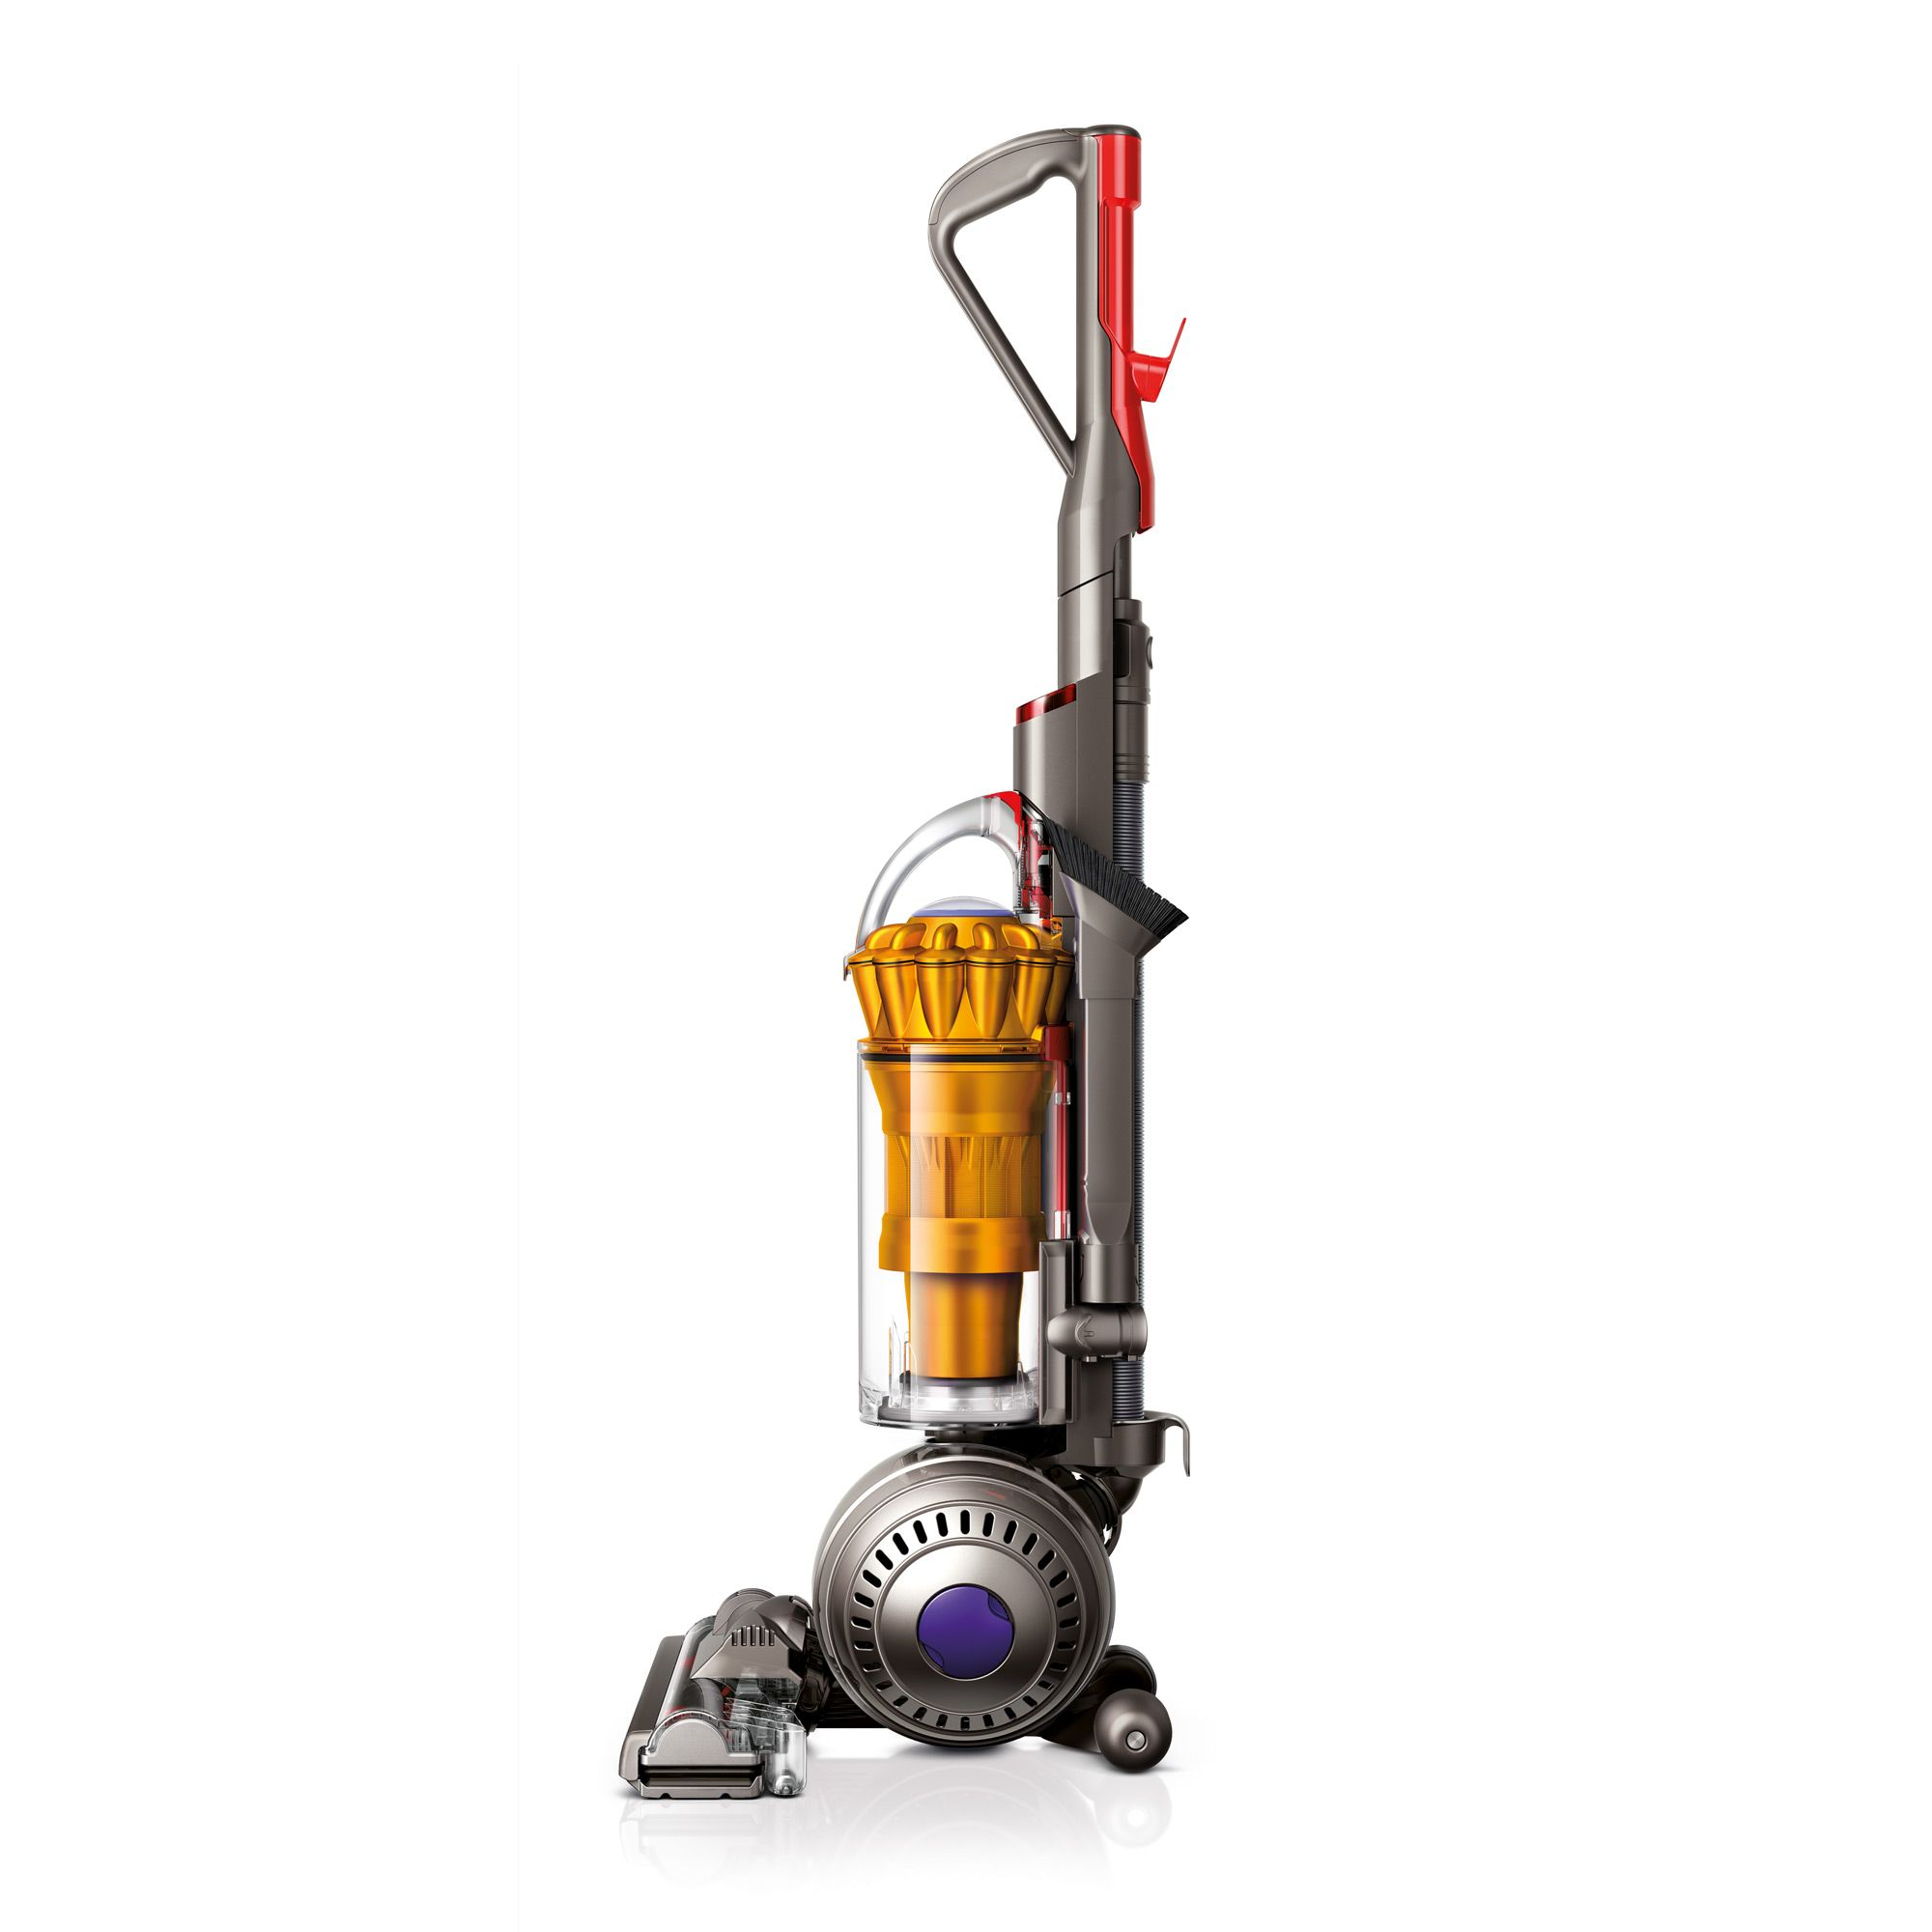 DC40 Multifloor Upright Vacuum Cleaner